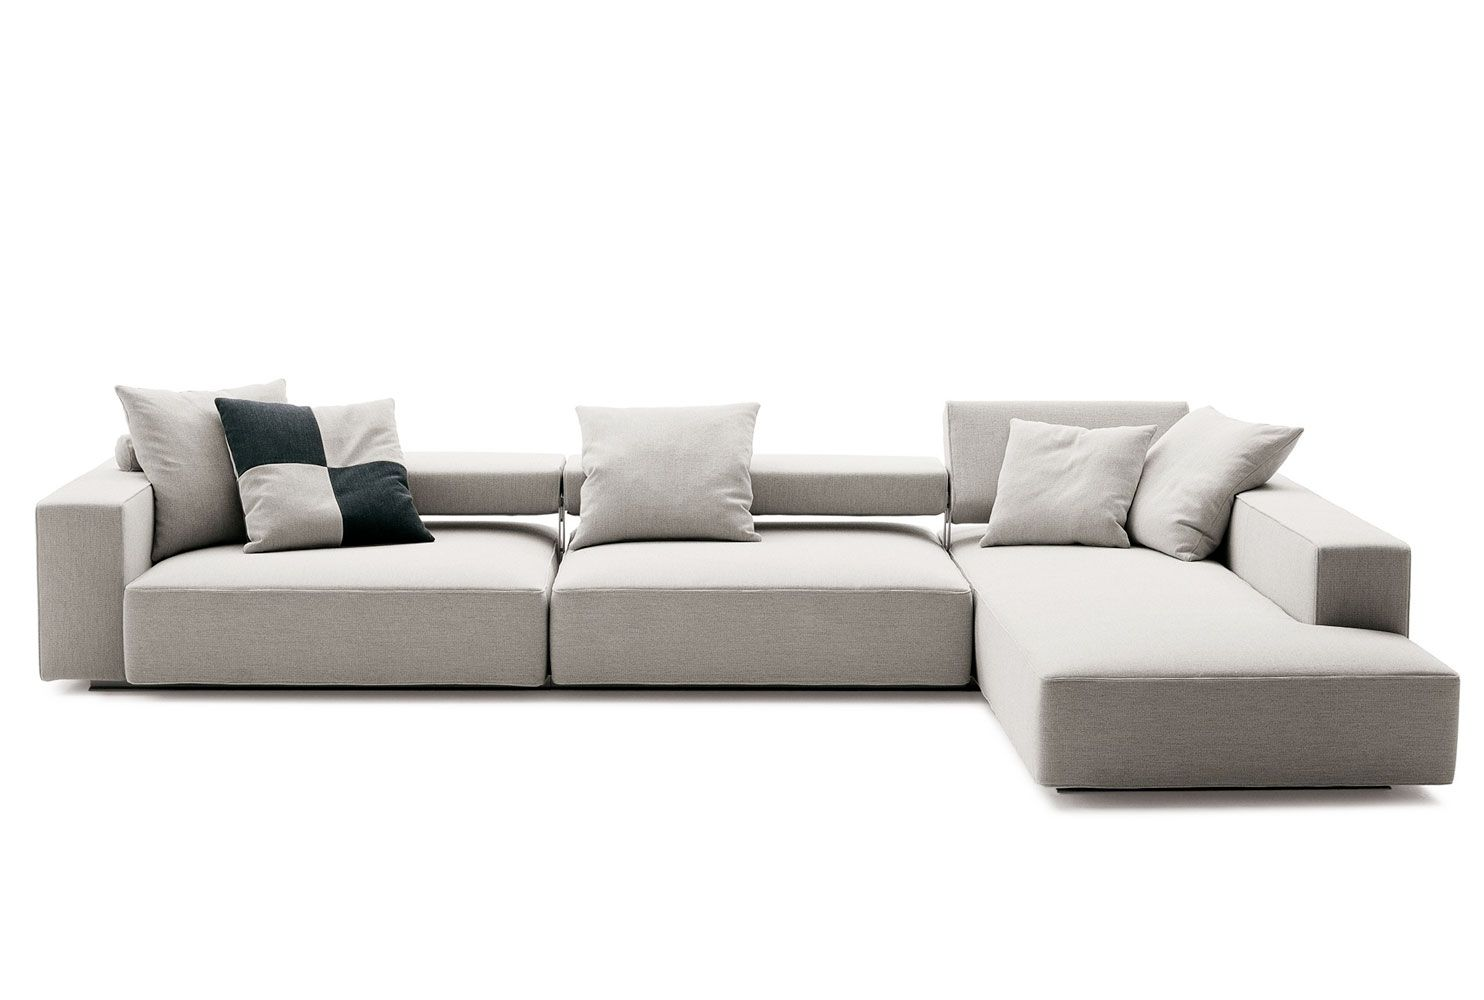 Divano Jean B&b Sofa Andy Collection B B Italia Design Paolo Piva Lin